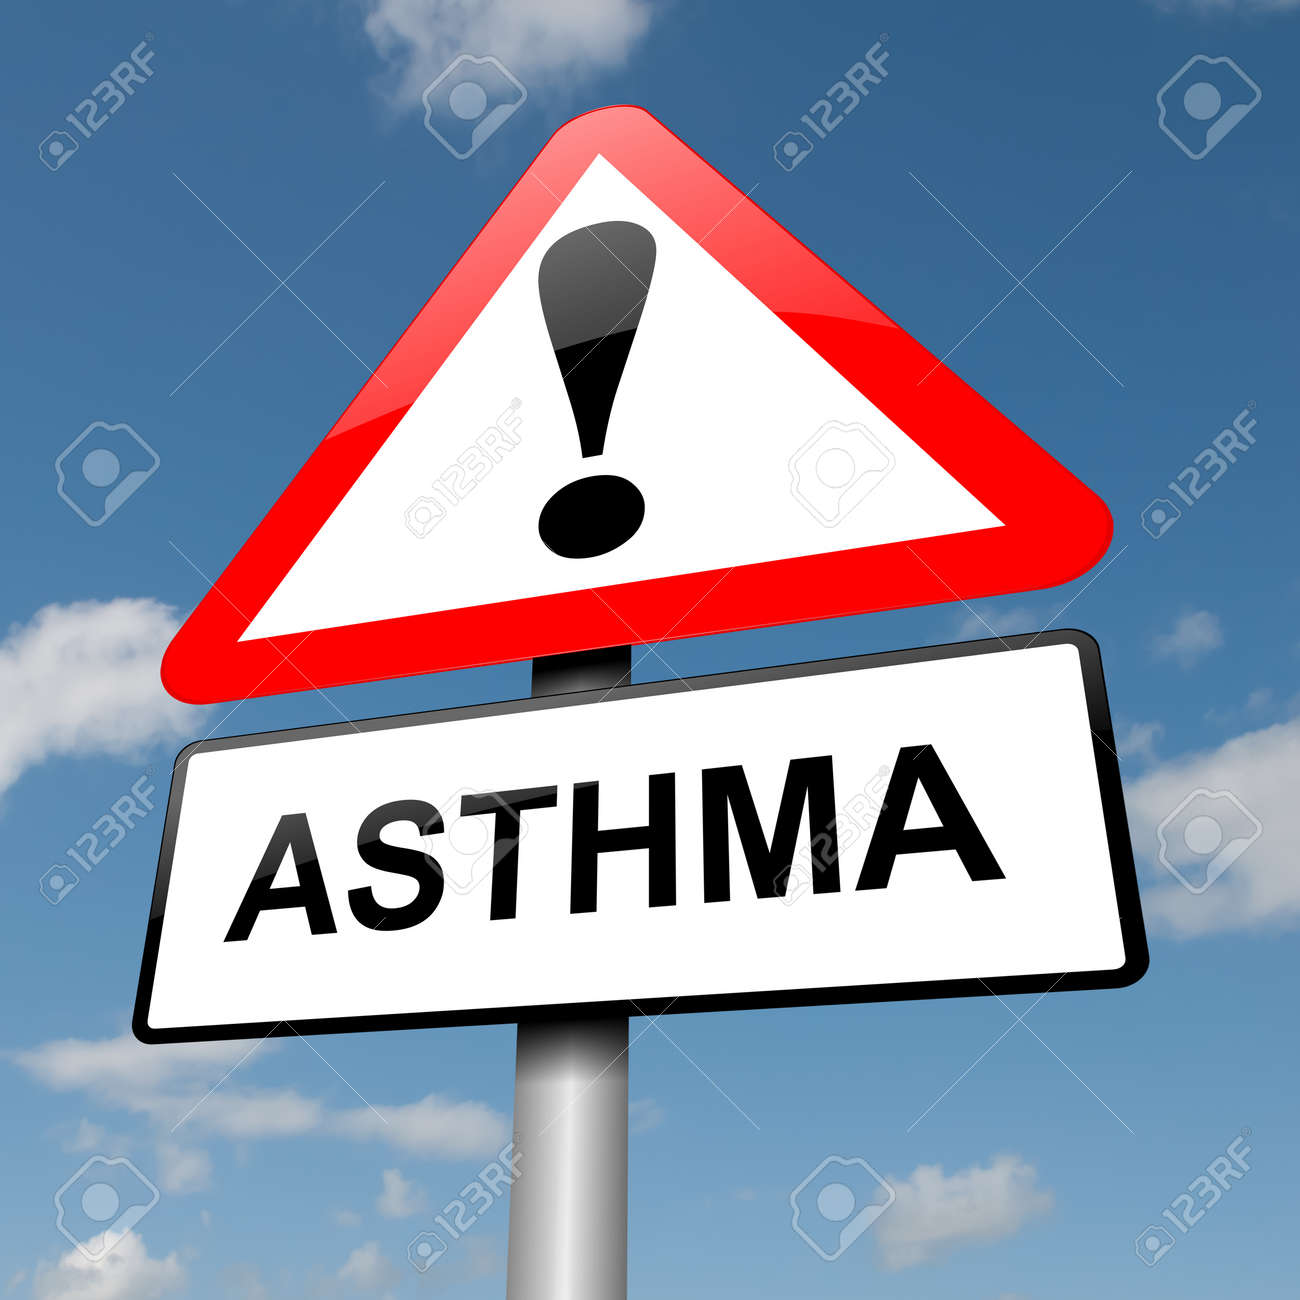 Illustration depicting a road traffic sign with an asthma concept. Blue sky background. Stock Photo - 14103189